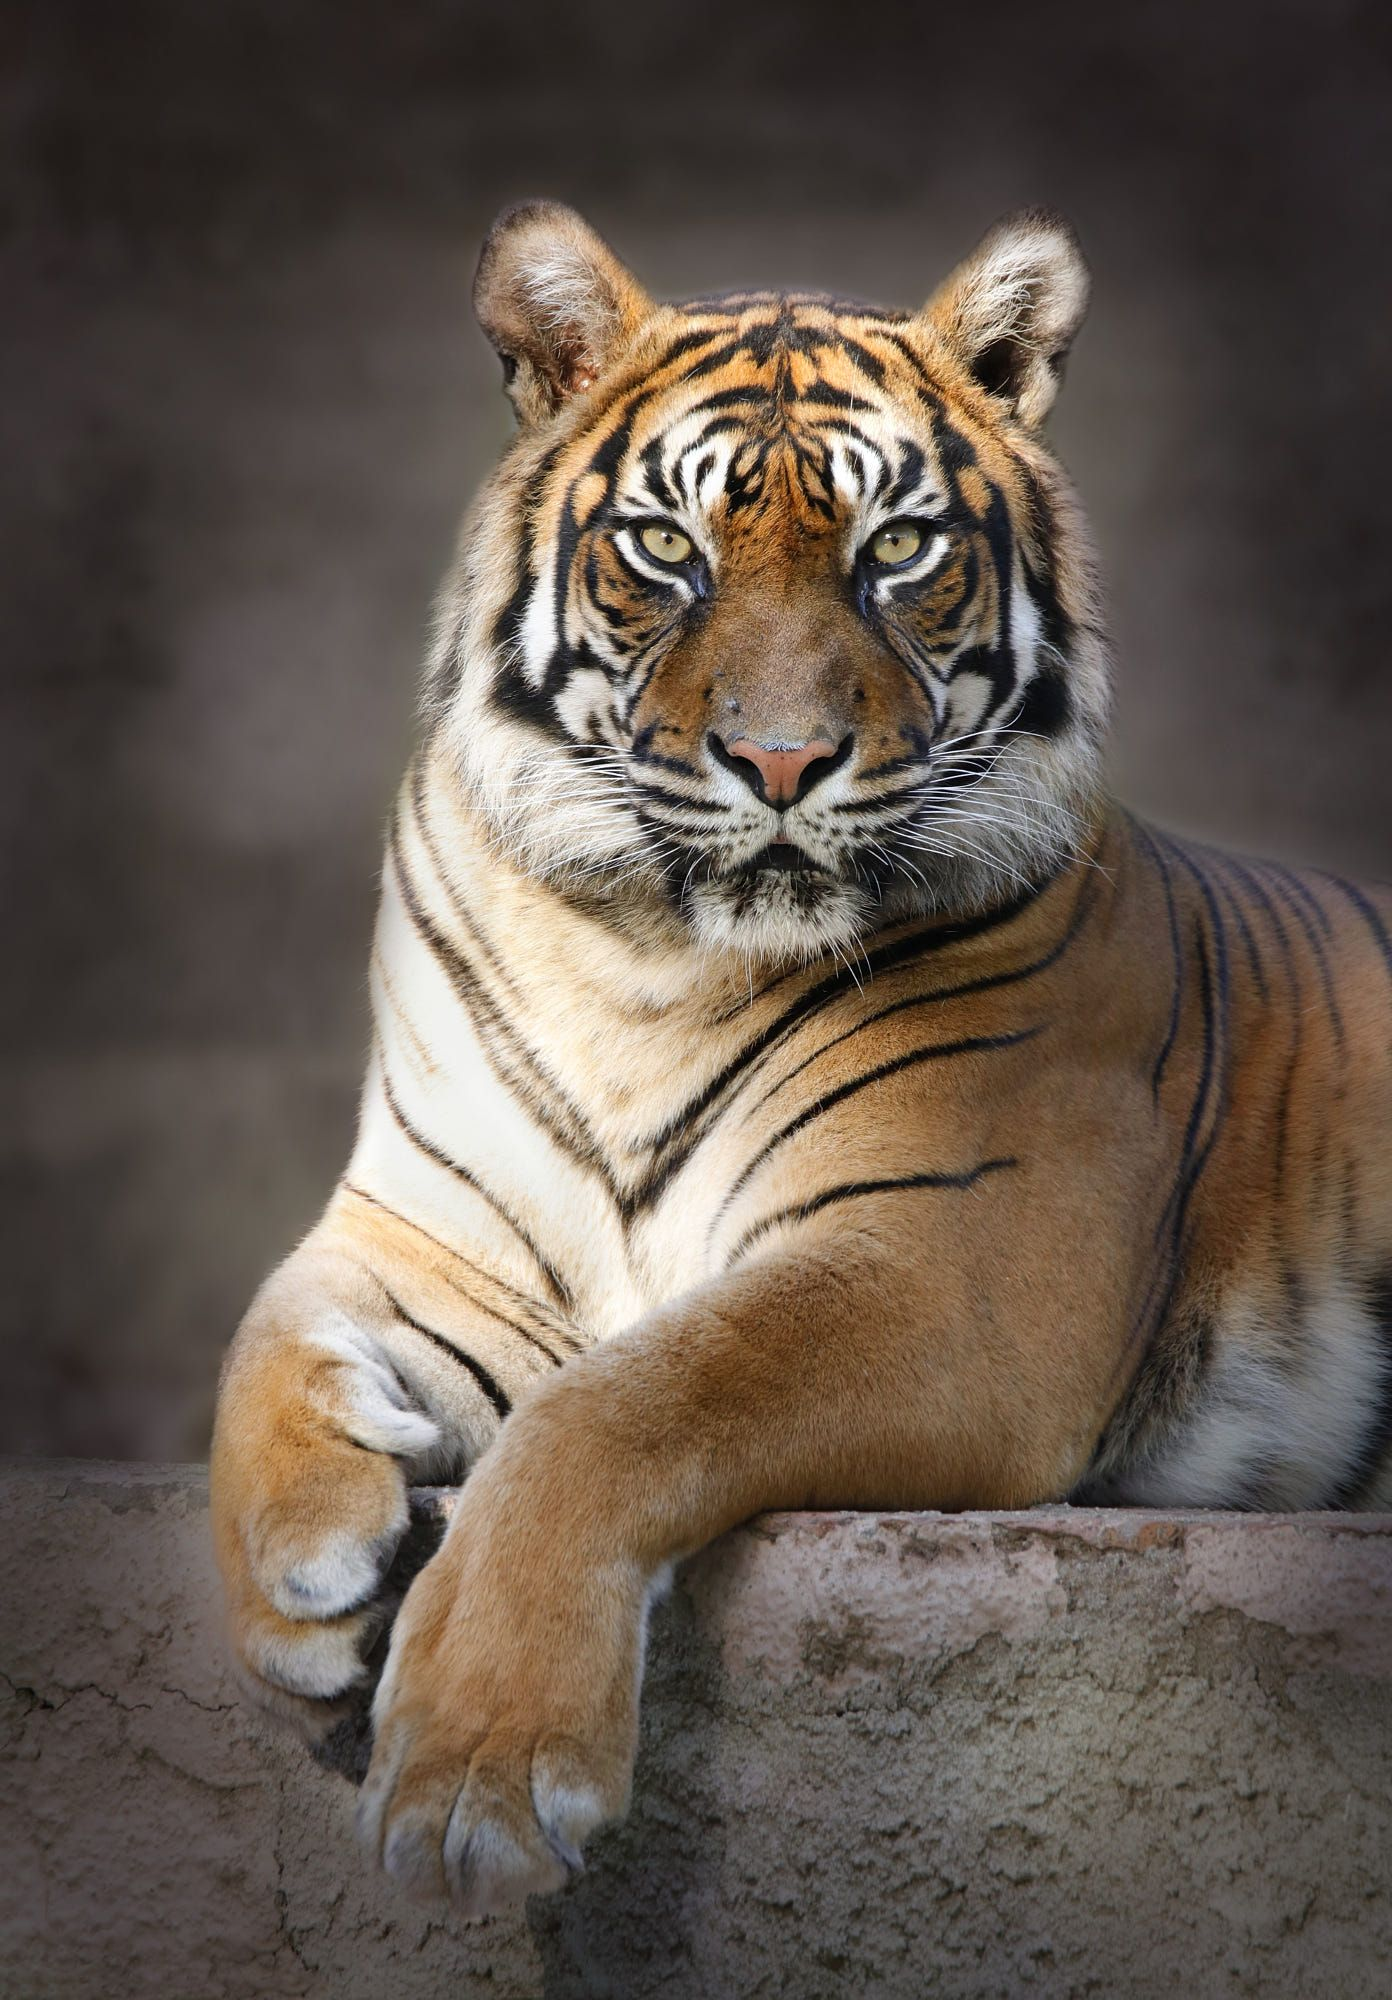 Tiger By Carles Just 500px In 2020 Animals Beautiful Tiger Pictures Majestic Animals